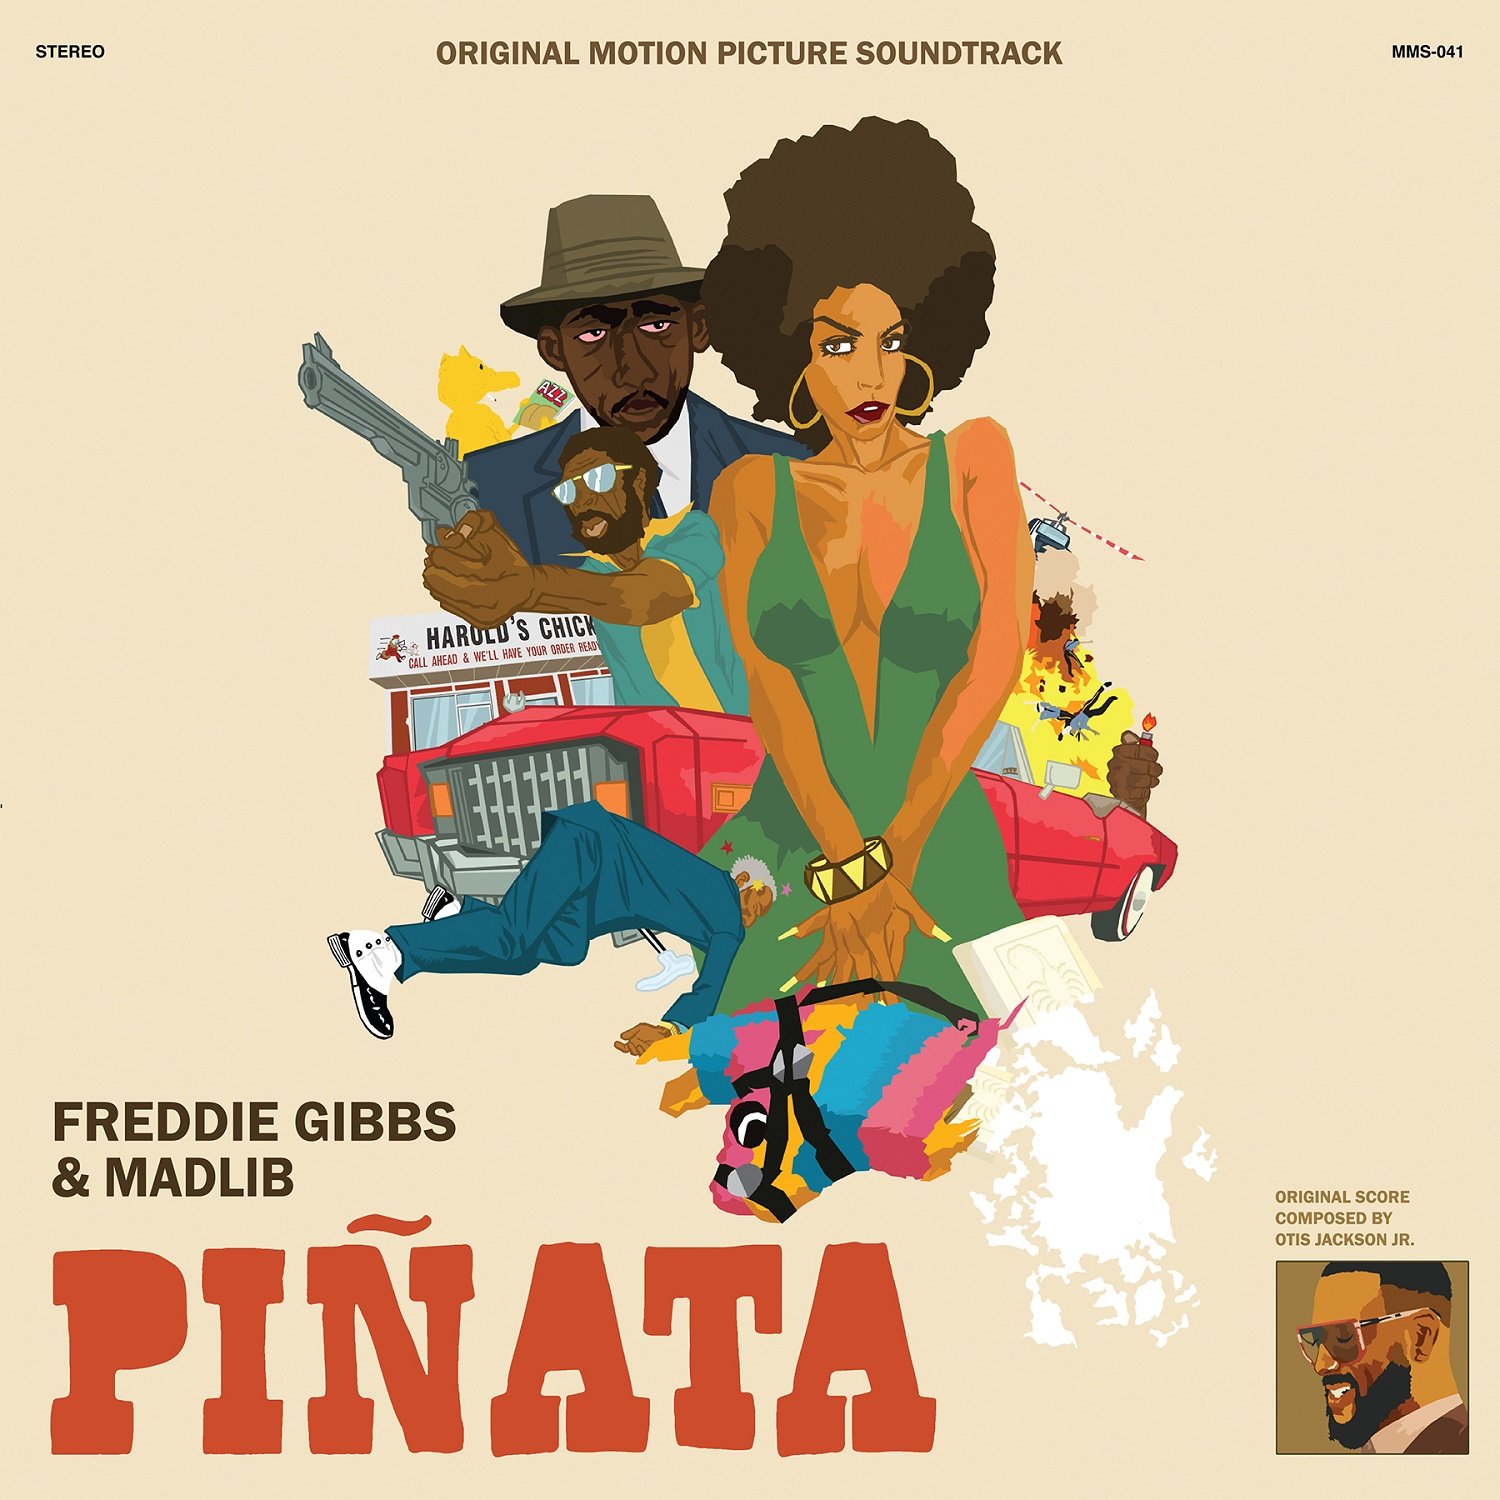 Freddie Gibbs & Madlib - Piñata: The 1974 Version [RSD Drops Oct 2020]